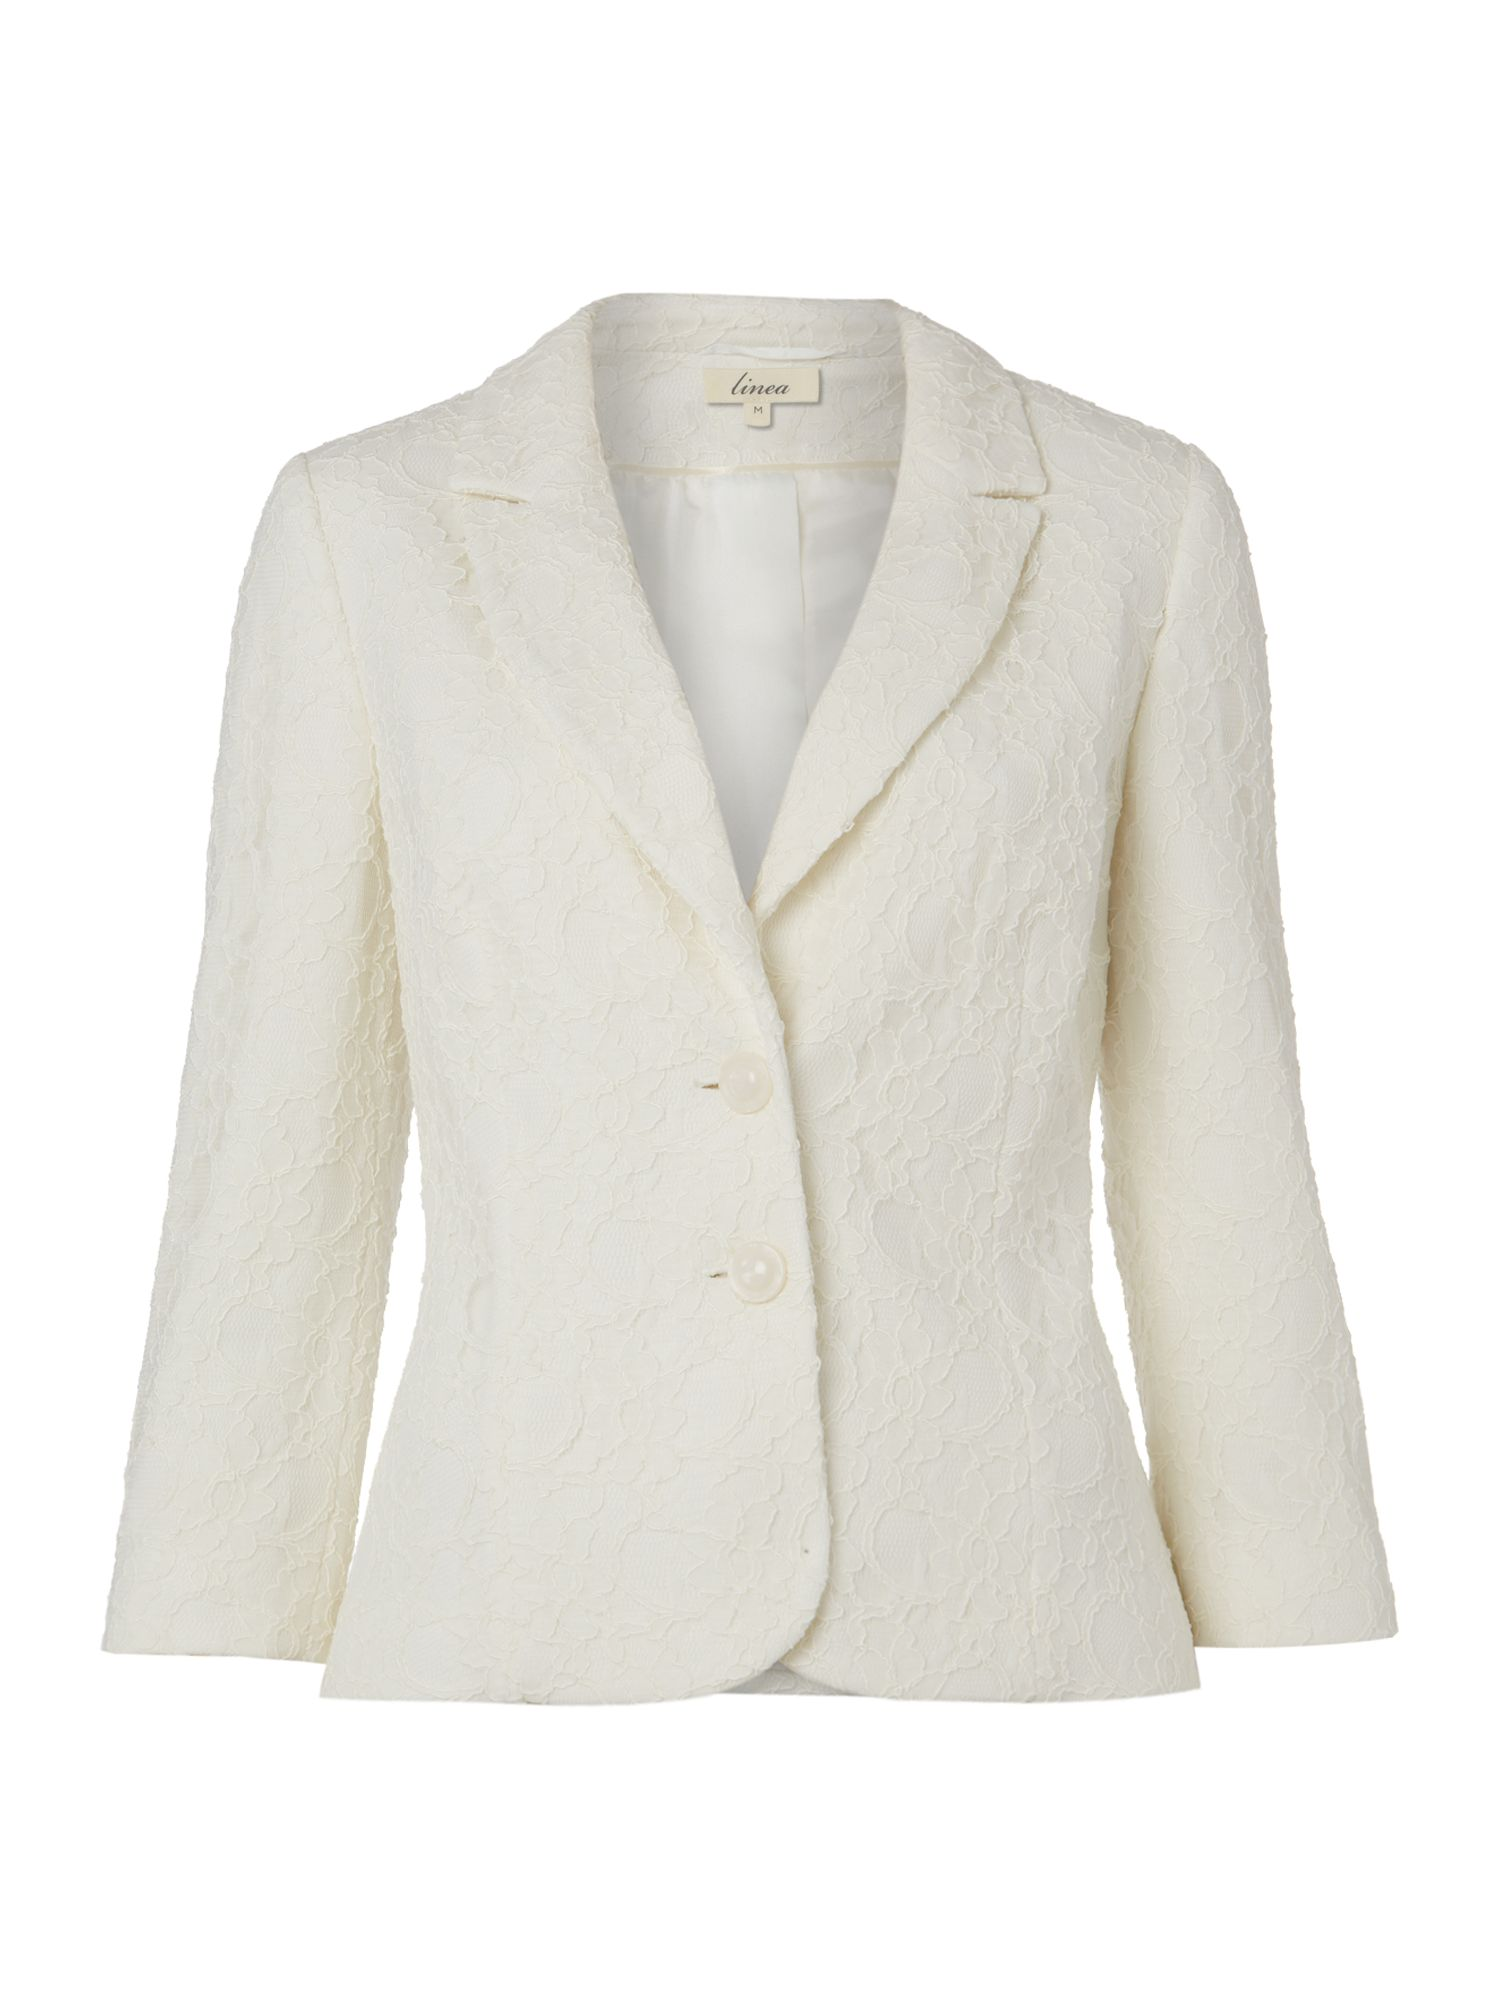 Angela lace jacket